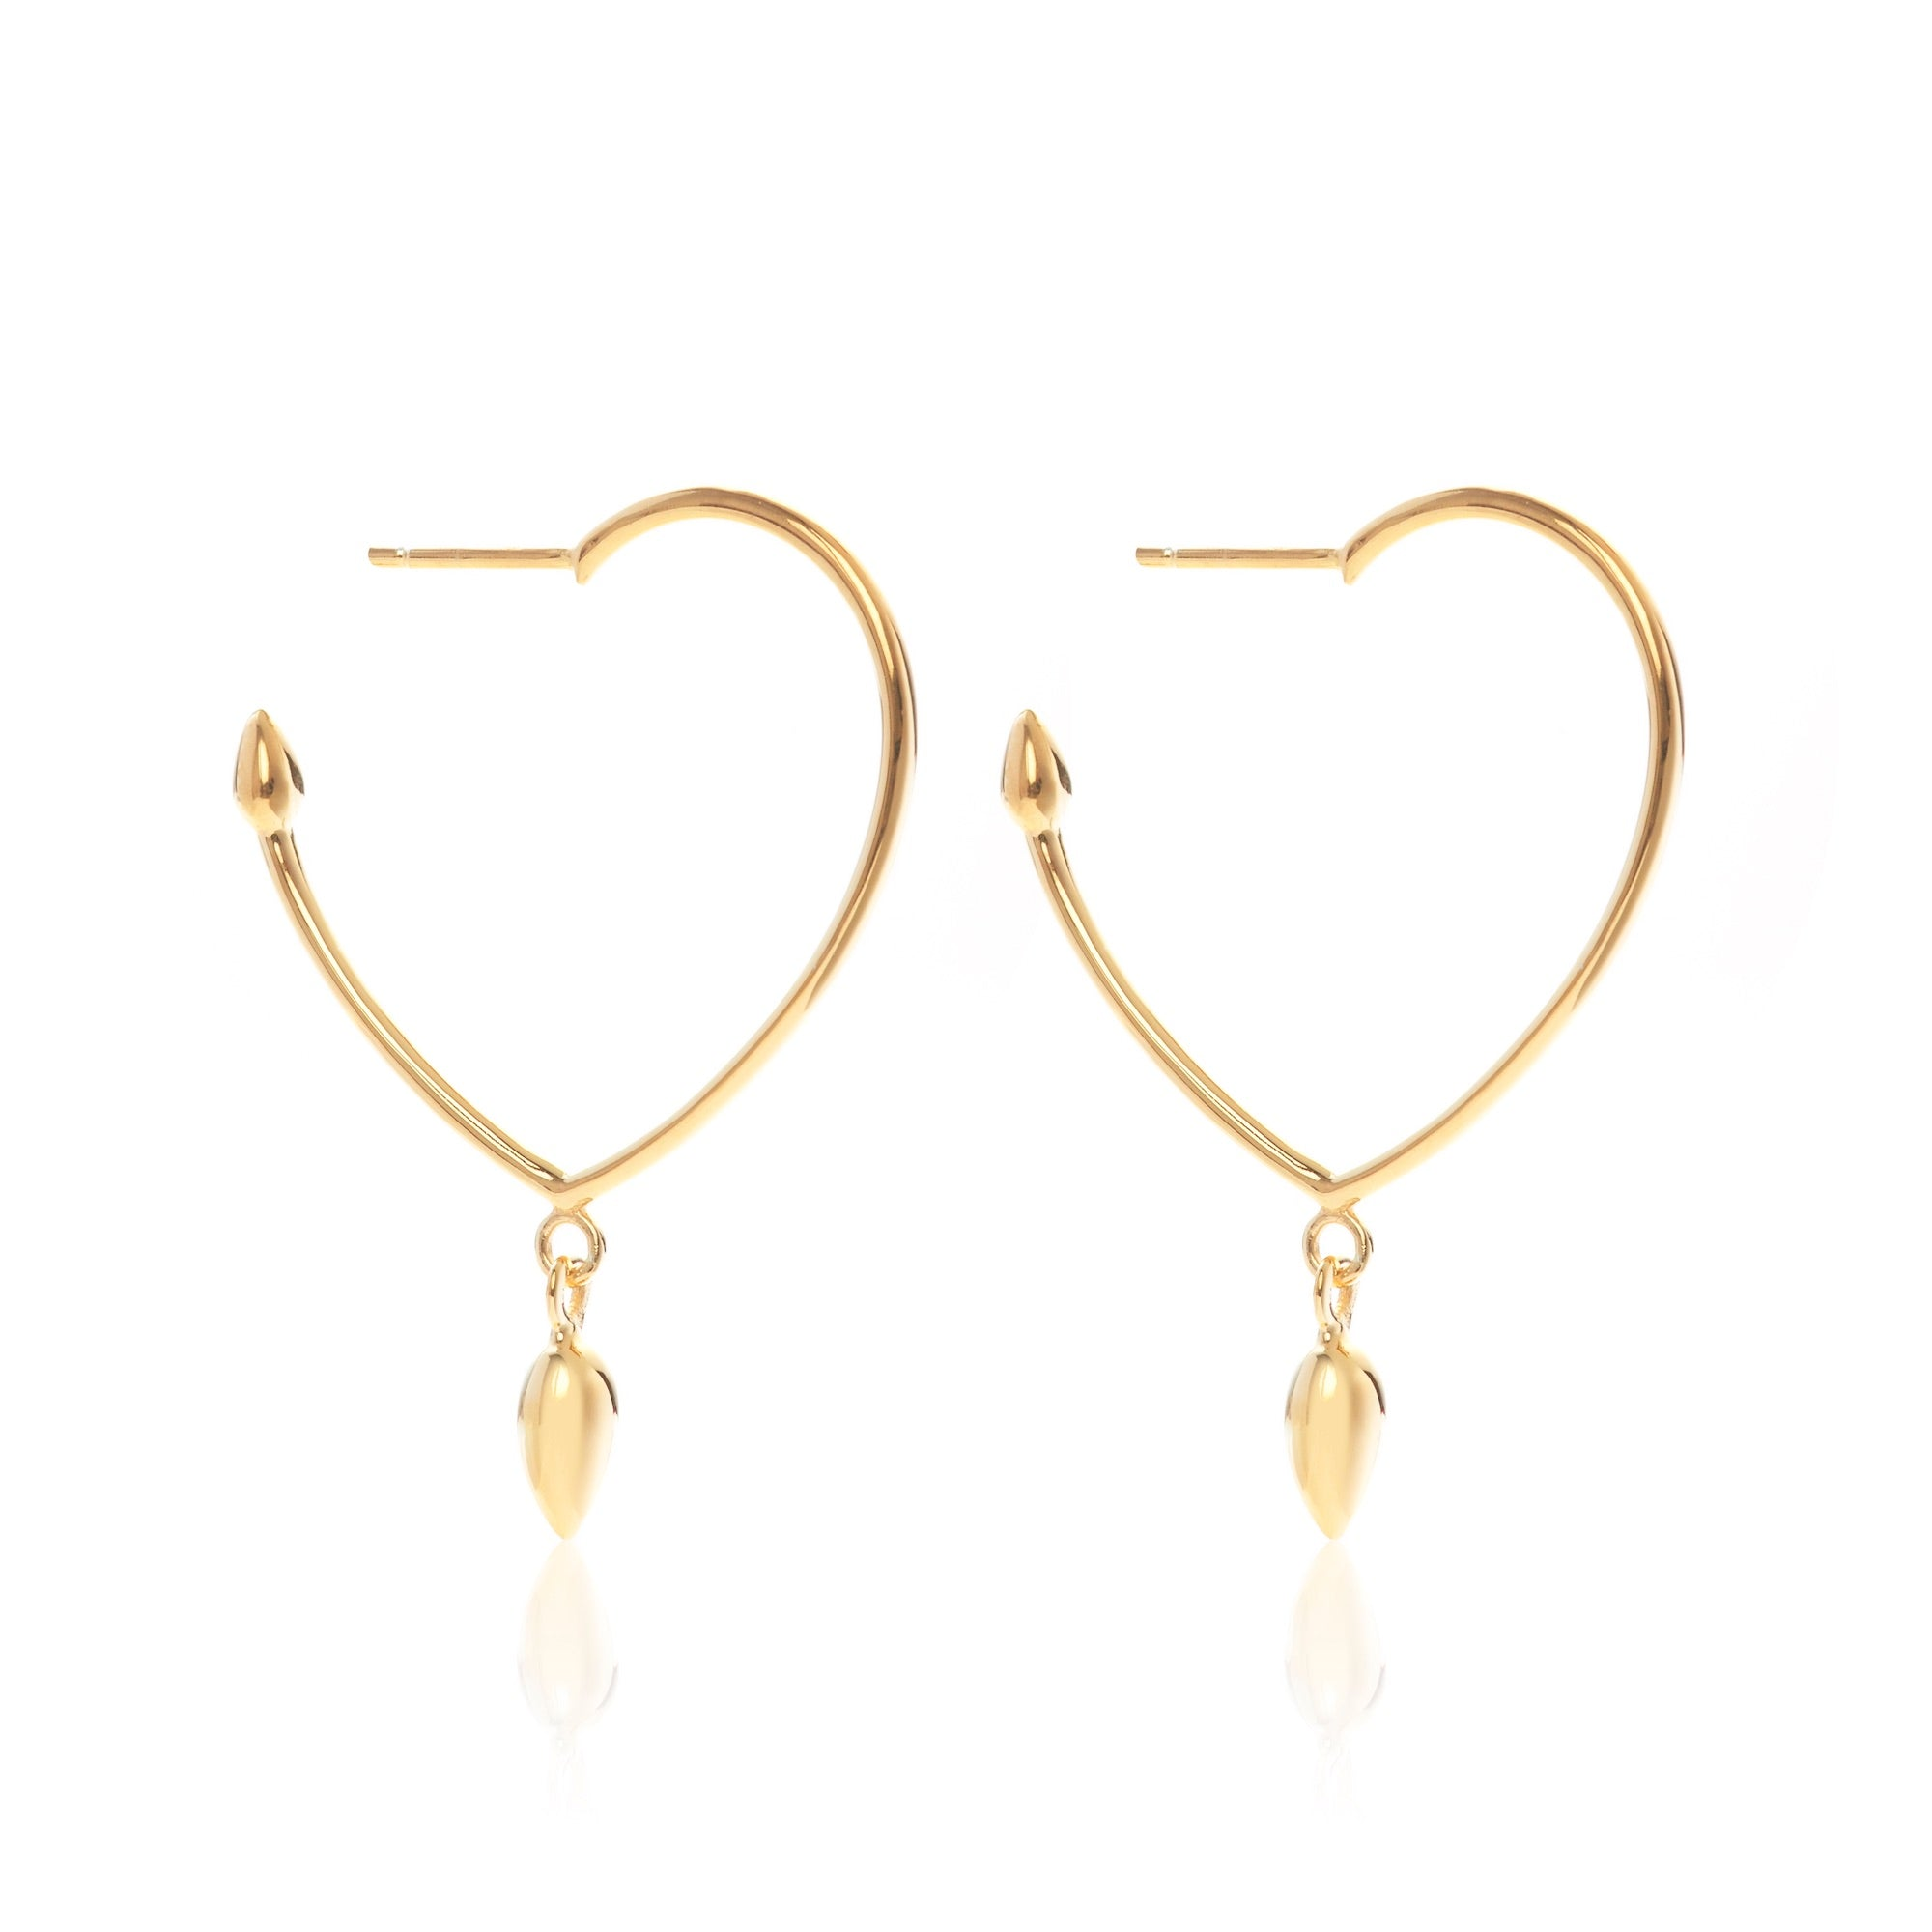 Valentine / Earrings / Lover Heart Hoops / Gold